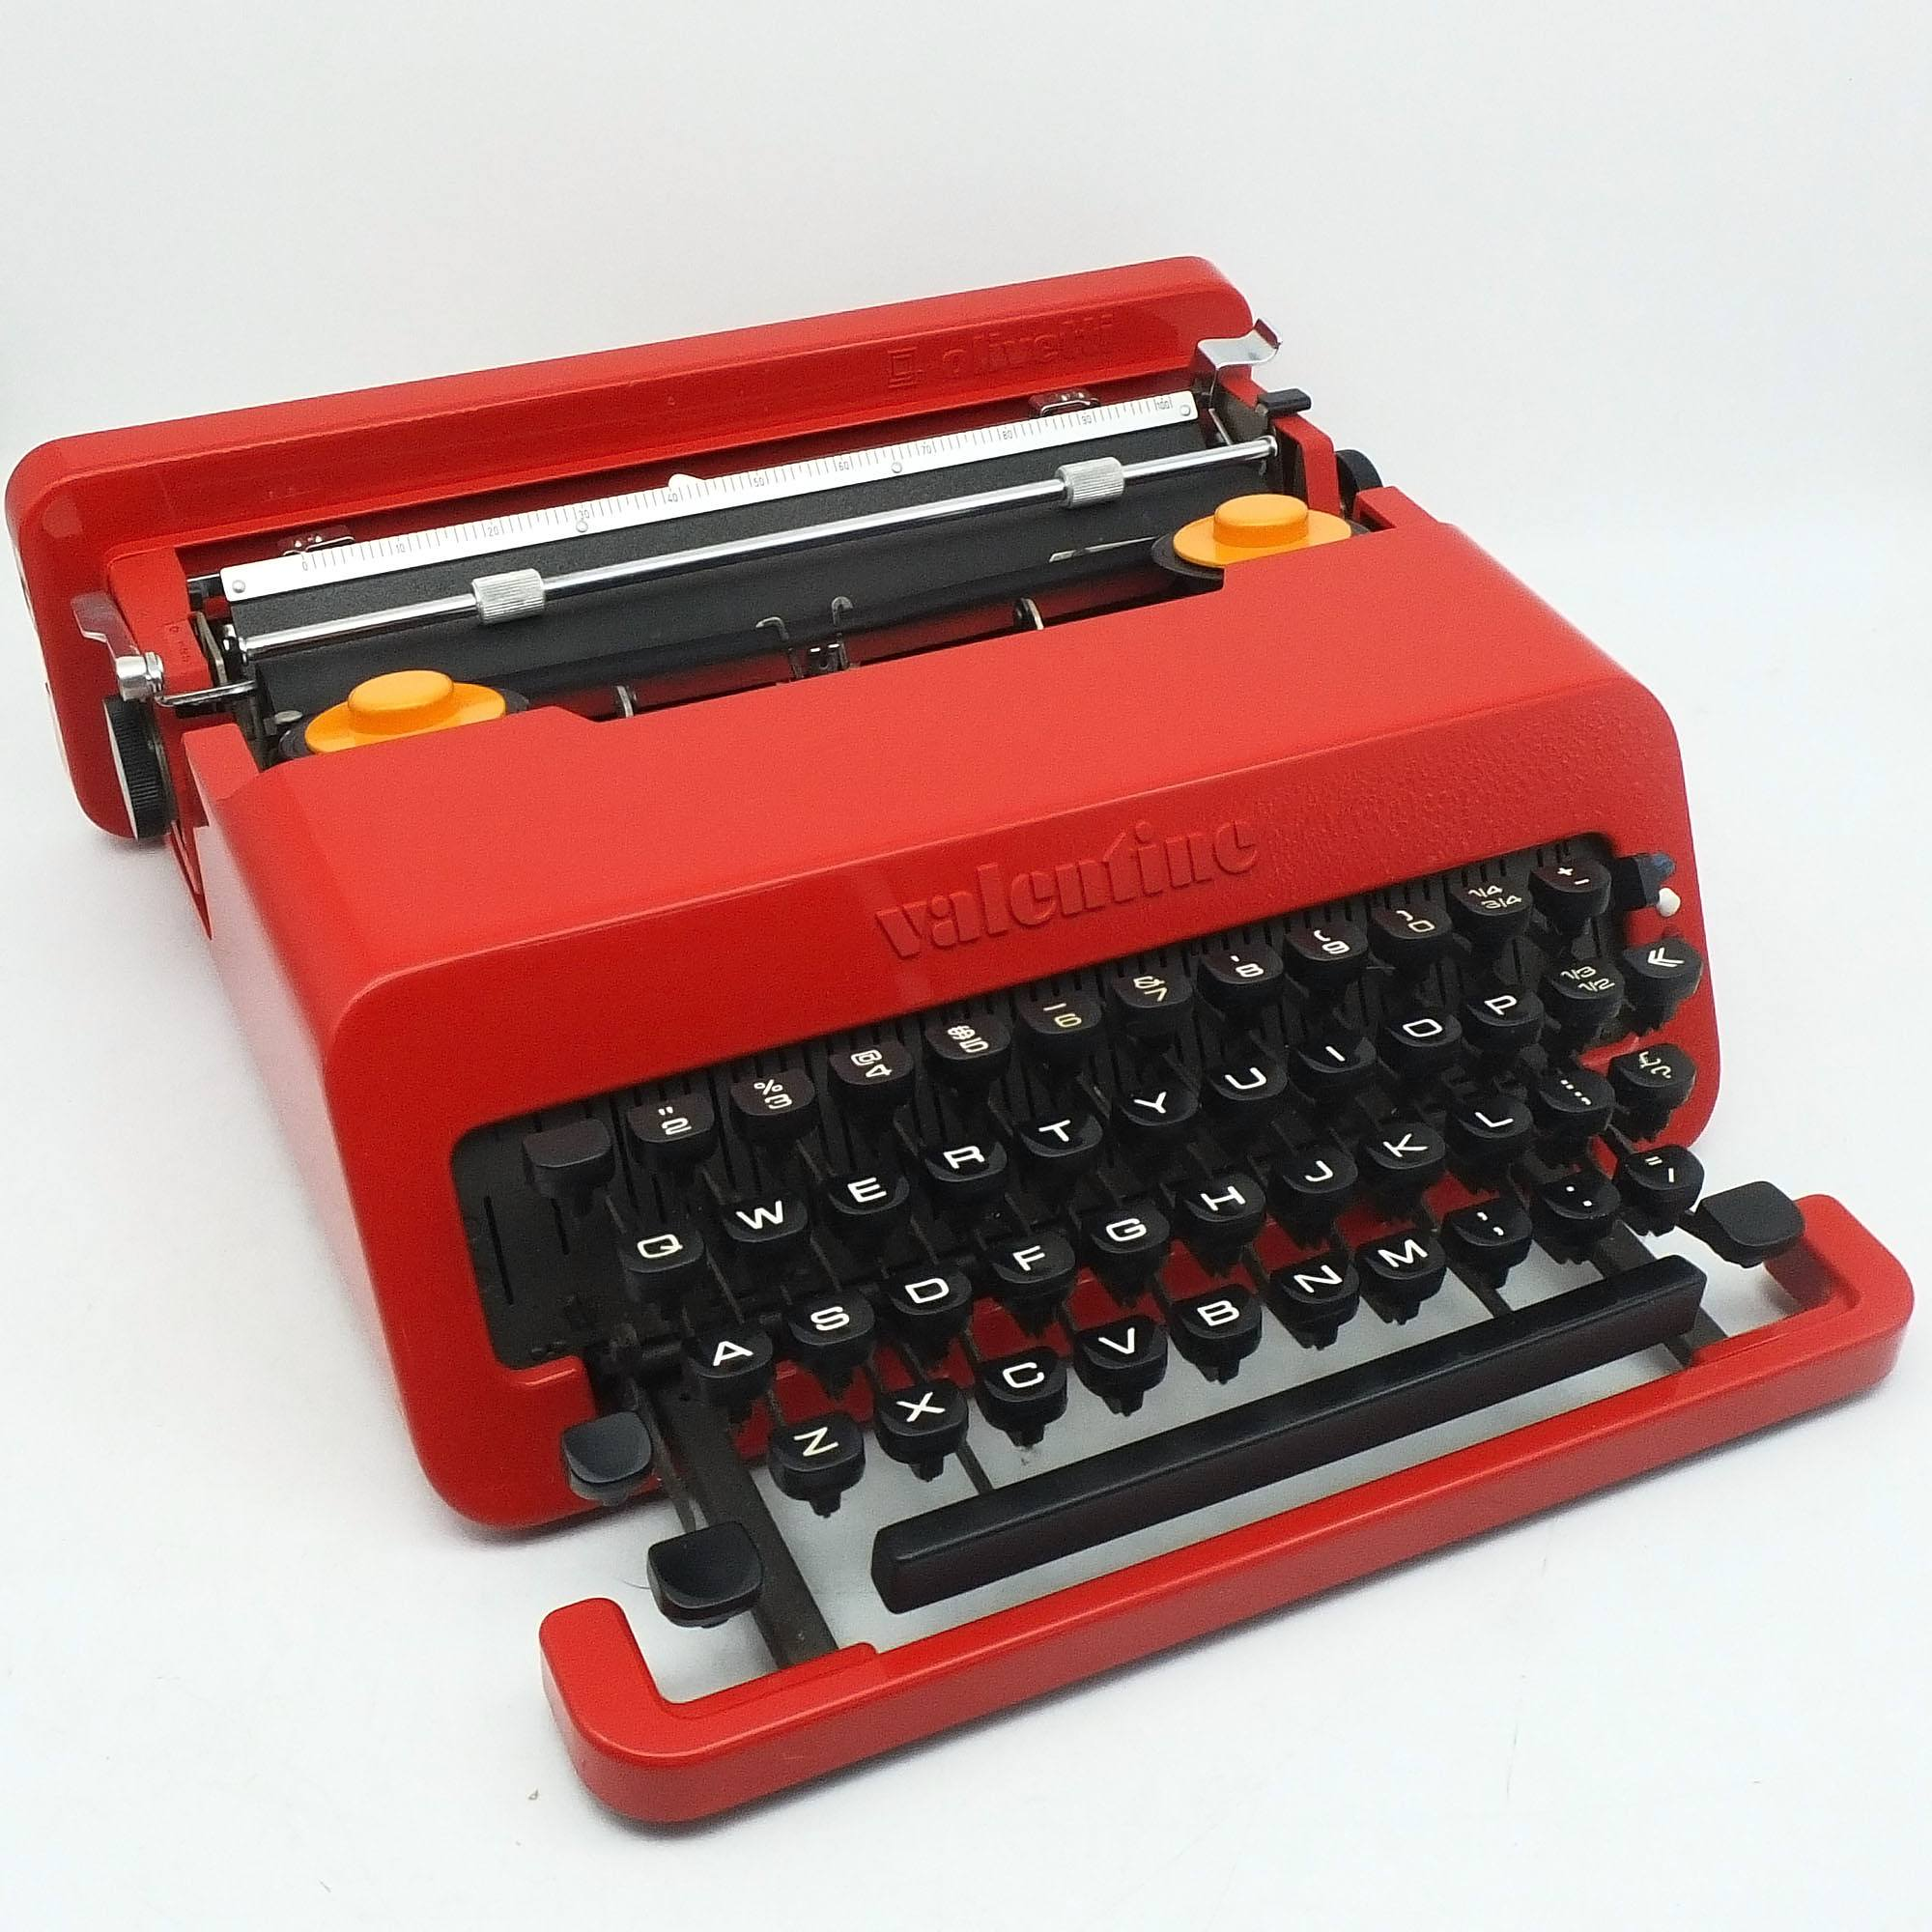 'Red Olivetti Valentine S Typewriter with Case Designed by Ettore Sottsass'